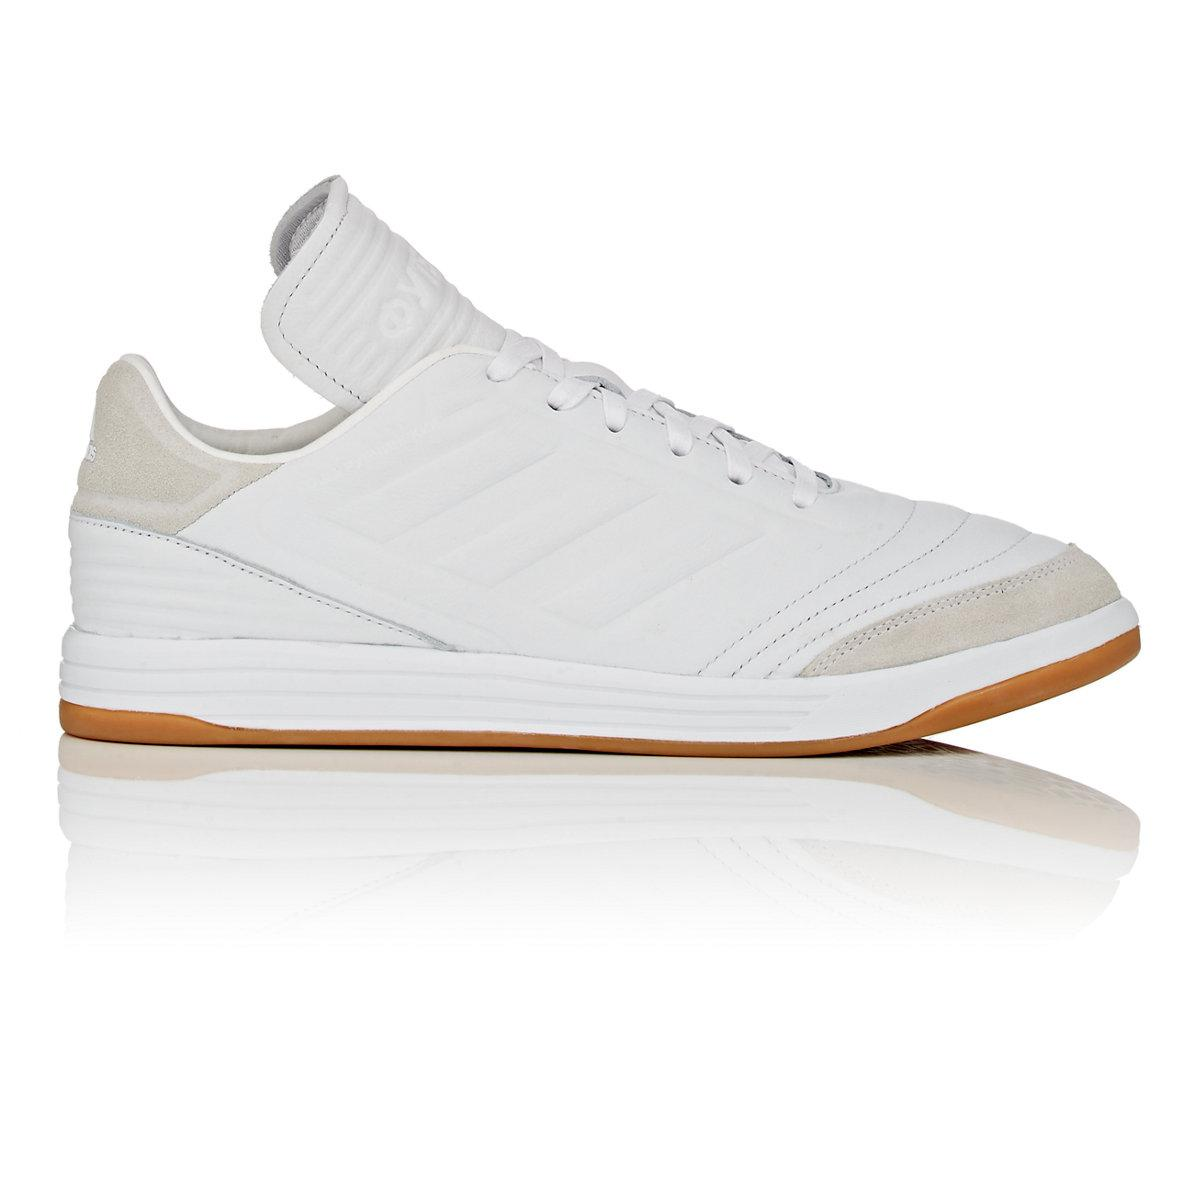 cheap for discount 52fdd 55151 Gosha Rubchinskiy. Mens White Copa 17.2 Leather Sneakers